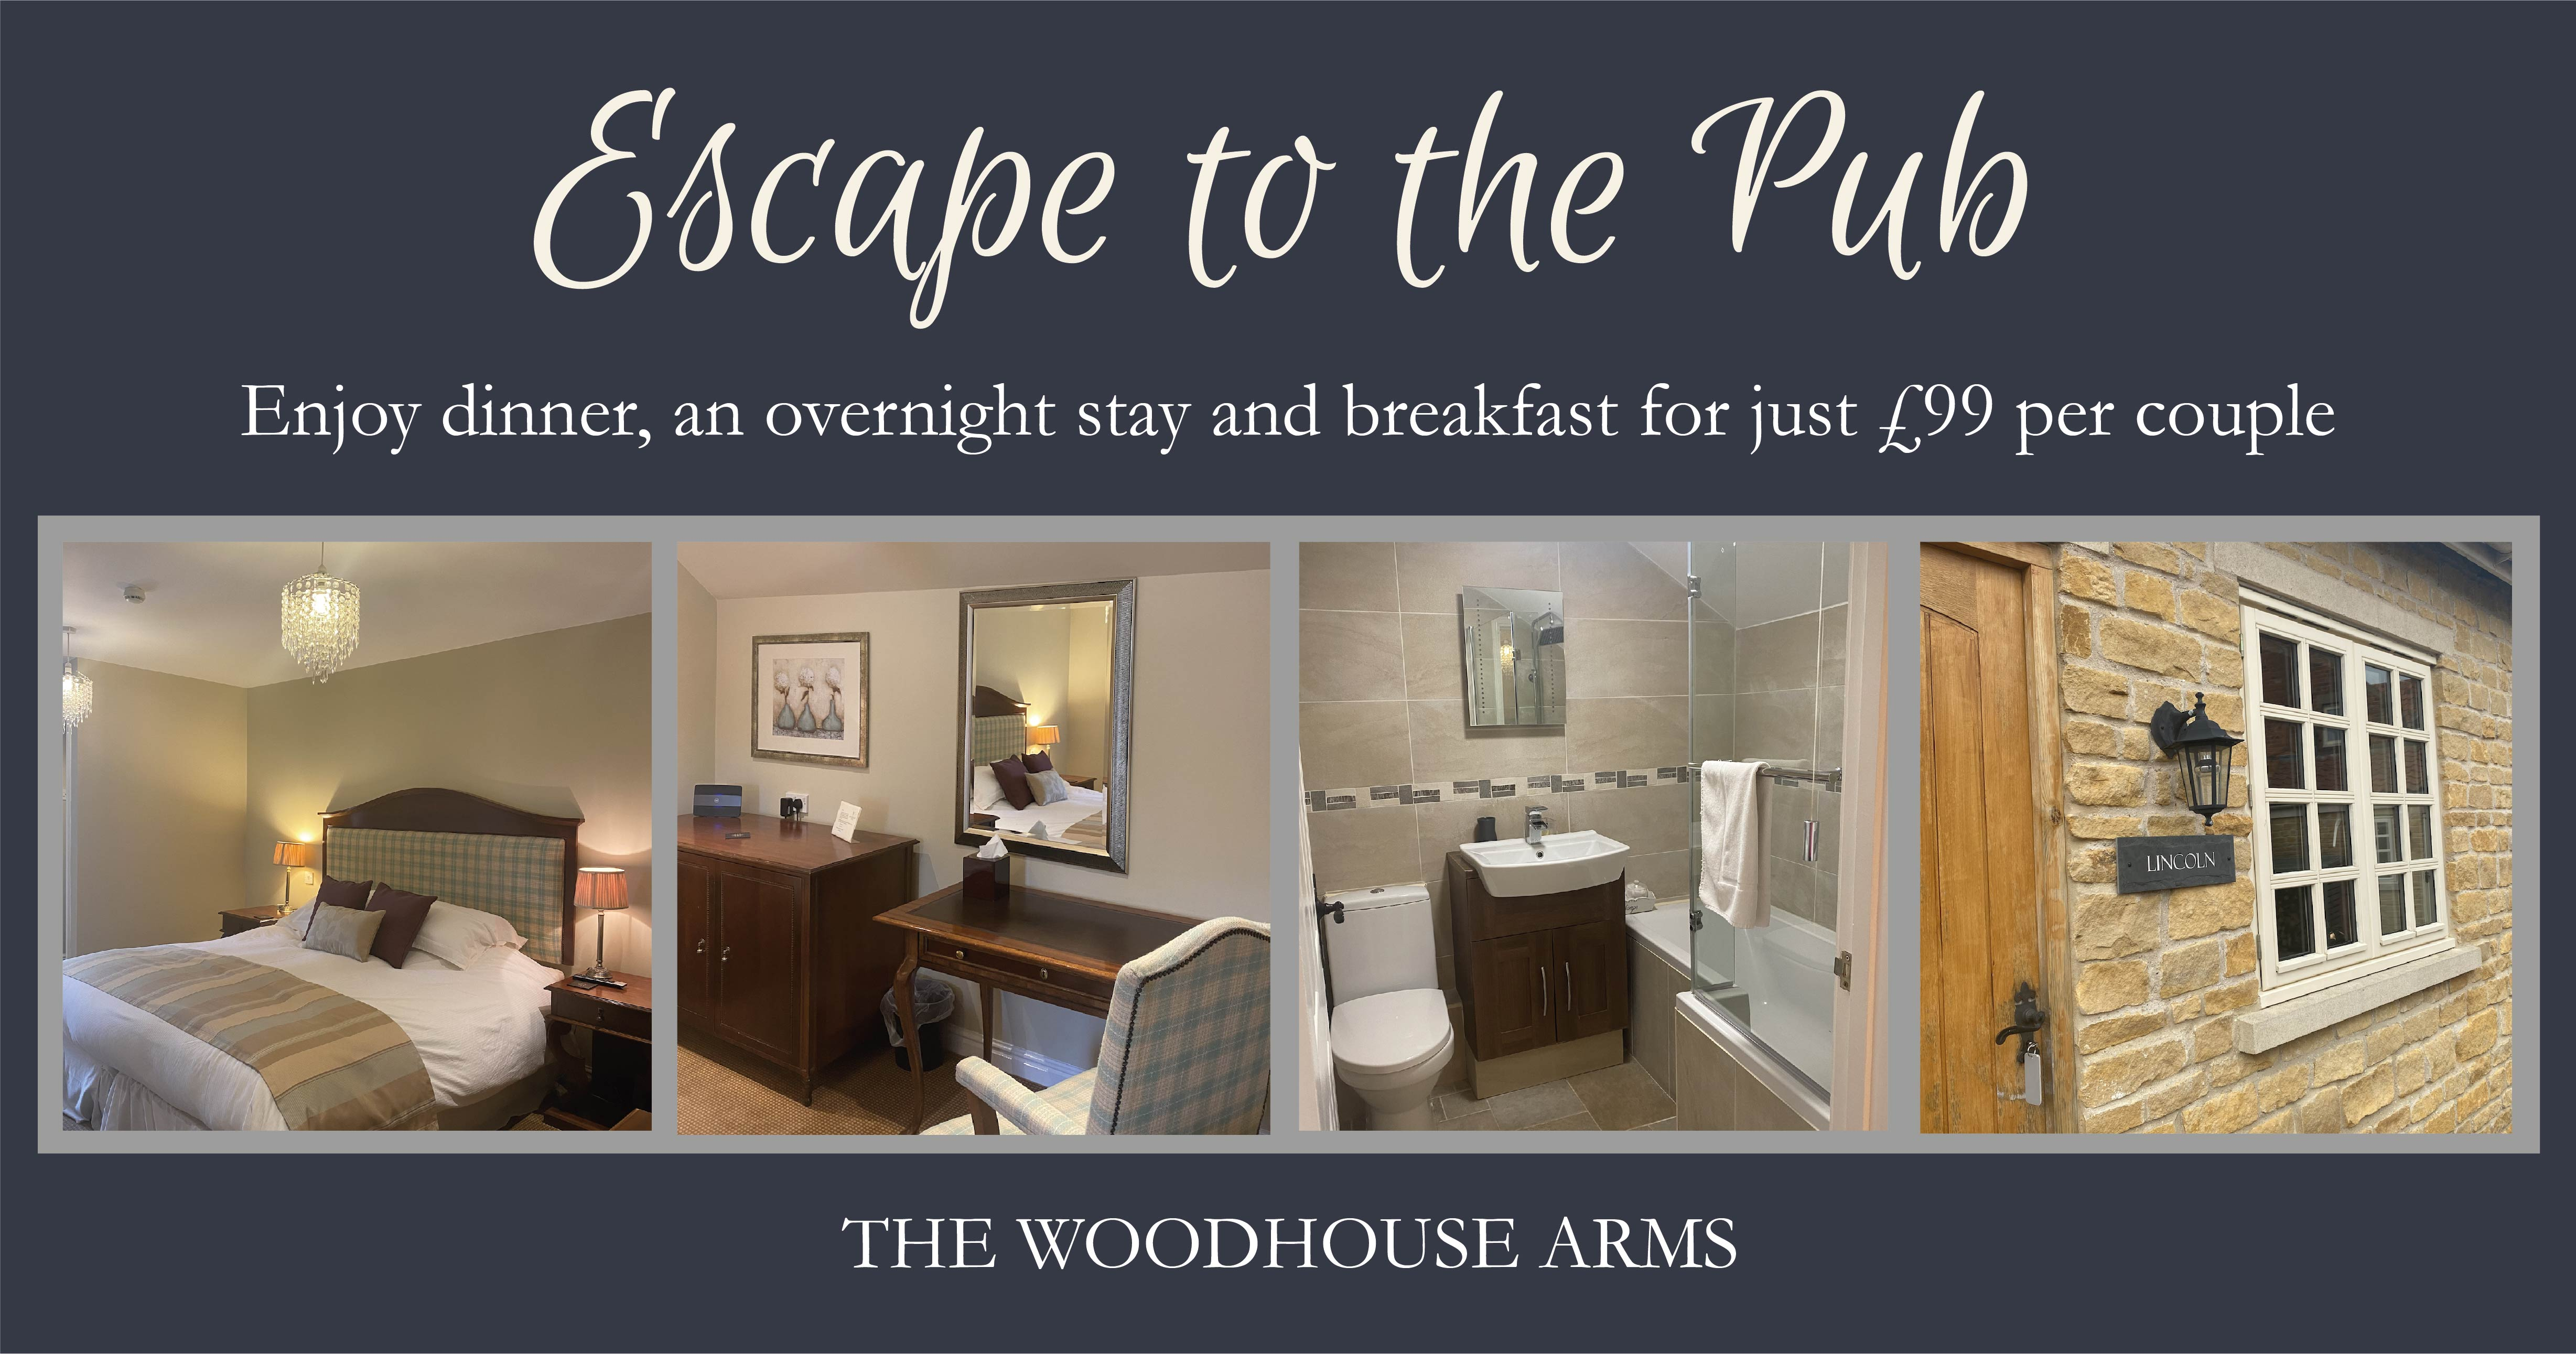 Escape To The Woodhouse Arms